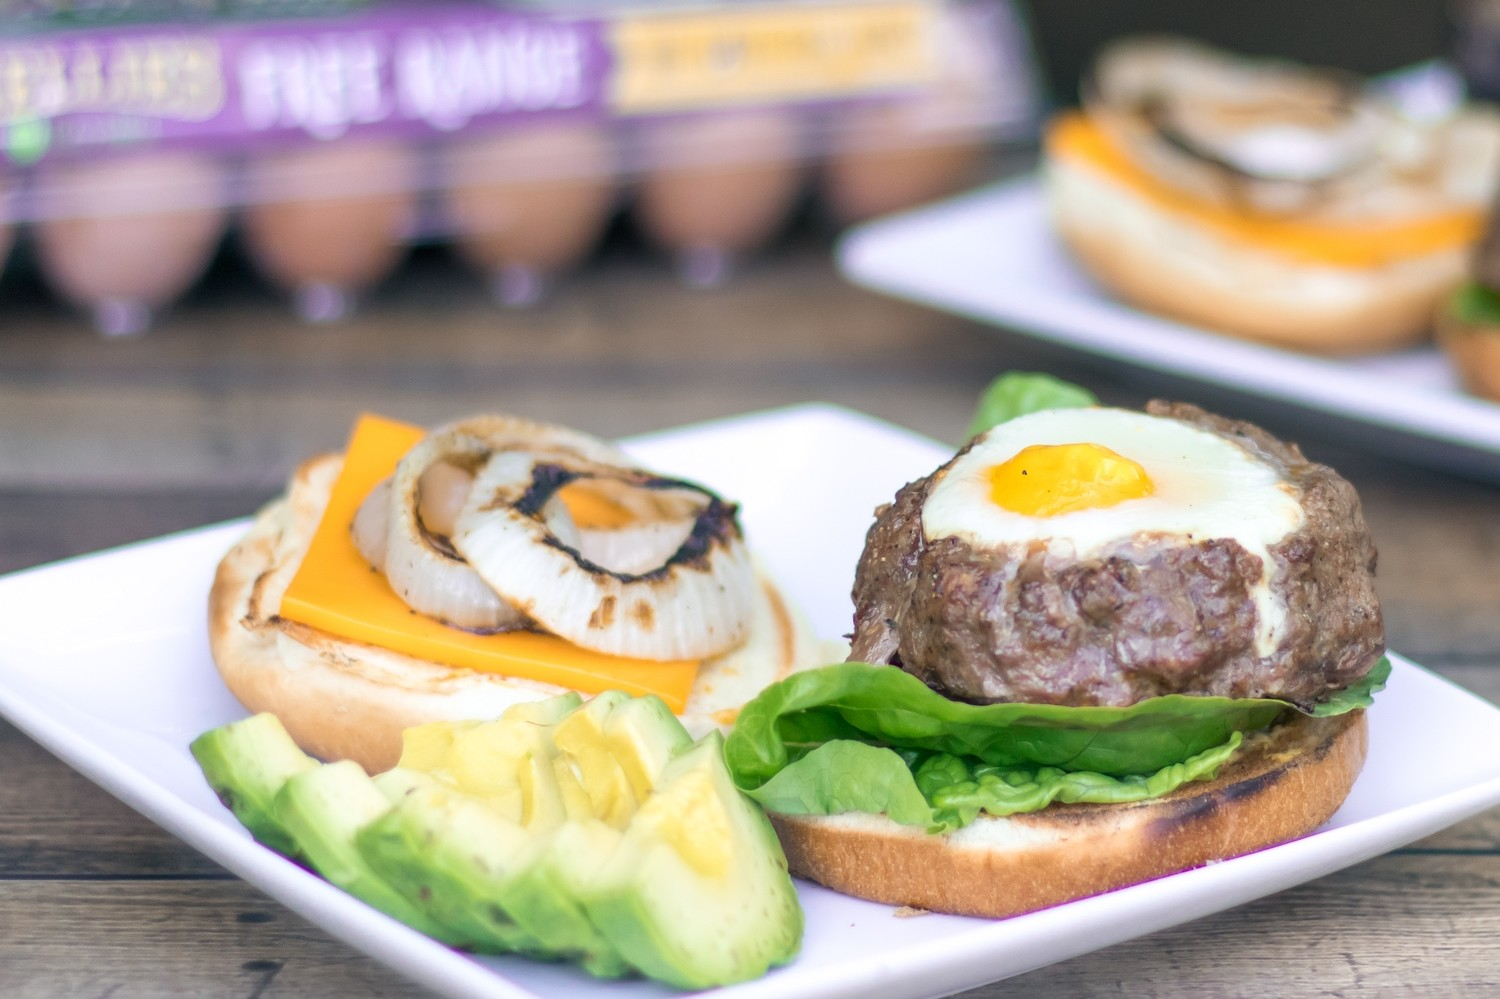 A sunny free range egg cooked on top of a grilled, juicy, seasoned BBQ burger with grilled onions. | nelliesfreerange.com